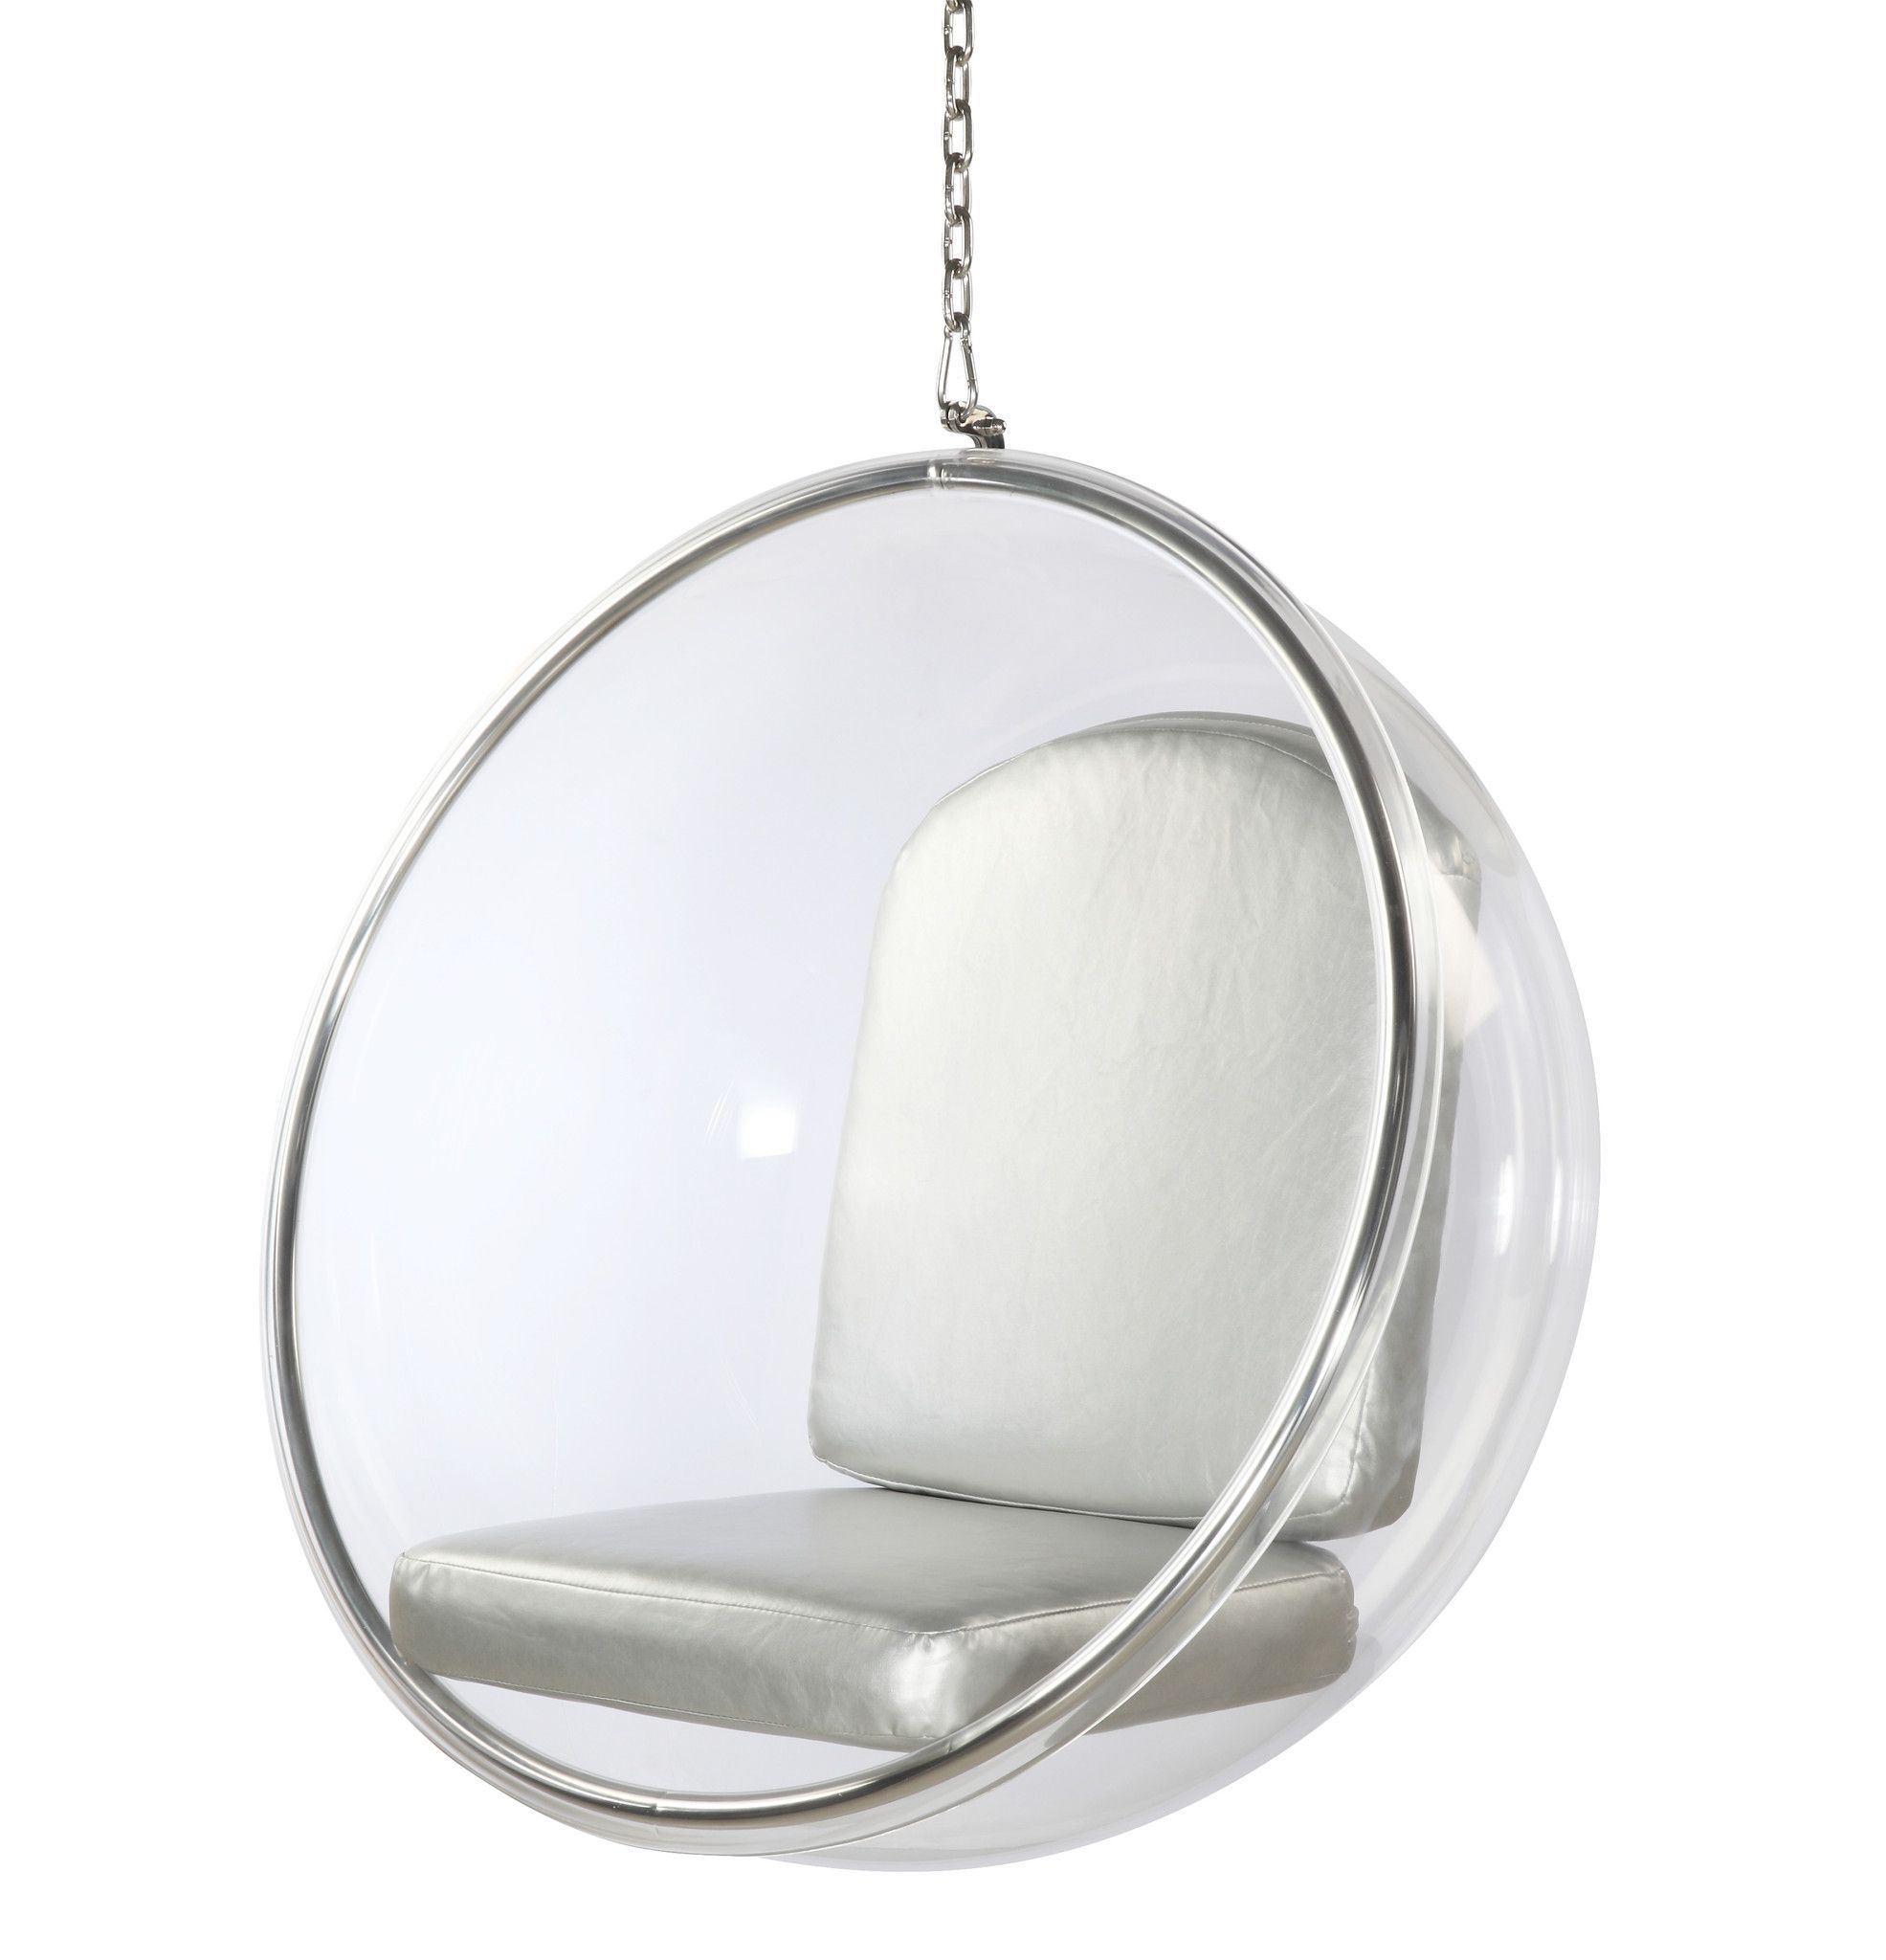 Hanging Chair Clear Bean Bag Beans Eero Saarinen Bubble Style Silver